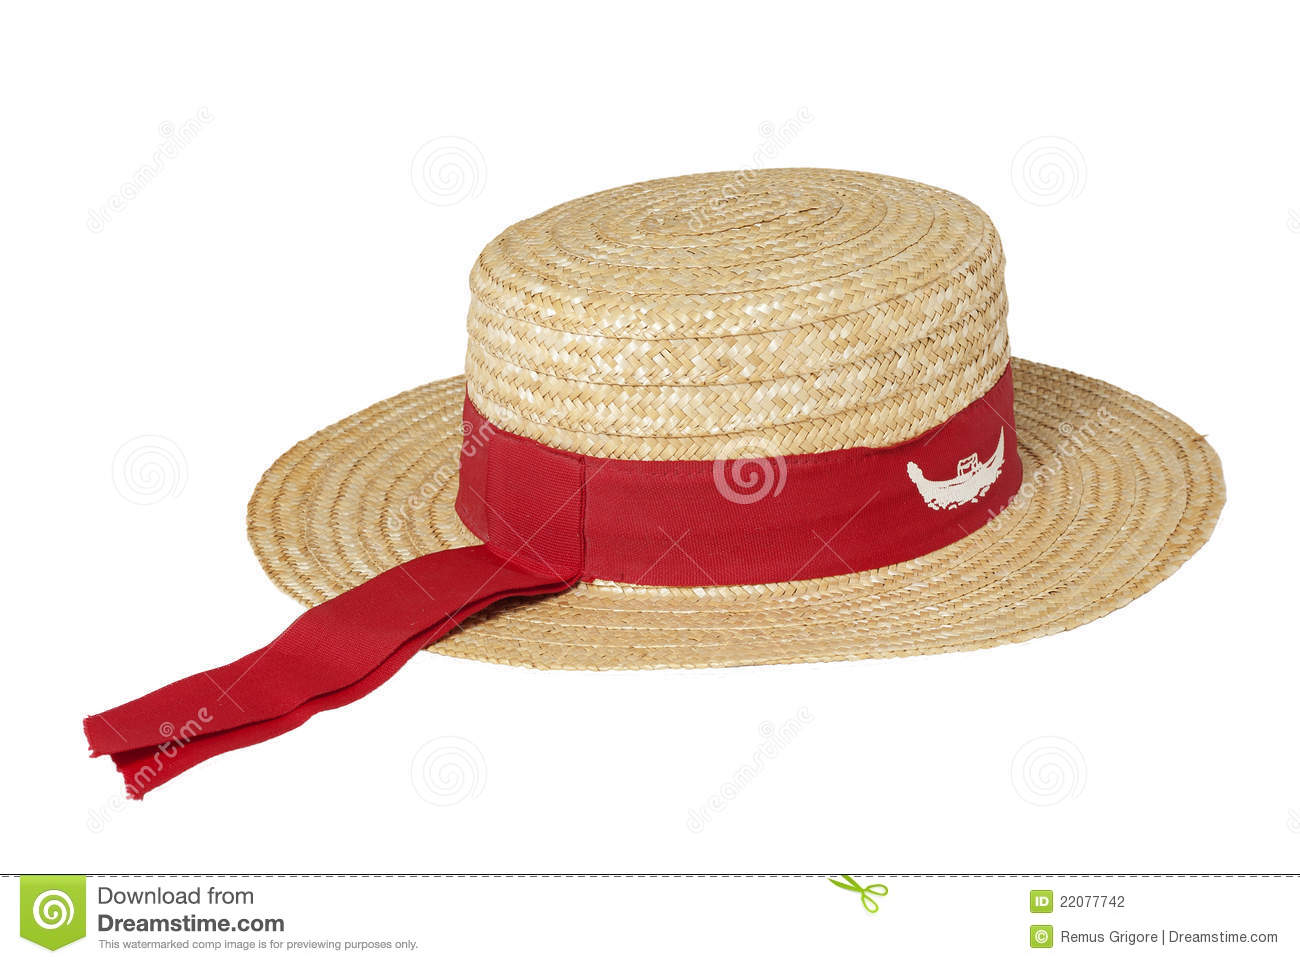 Gondolier Traditional Straw Hat Stock Photo - Image of venetian ... 8eb1ccde9